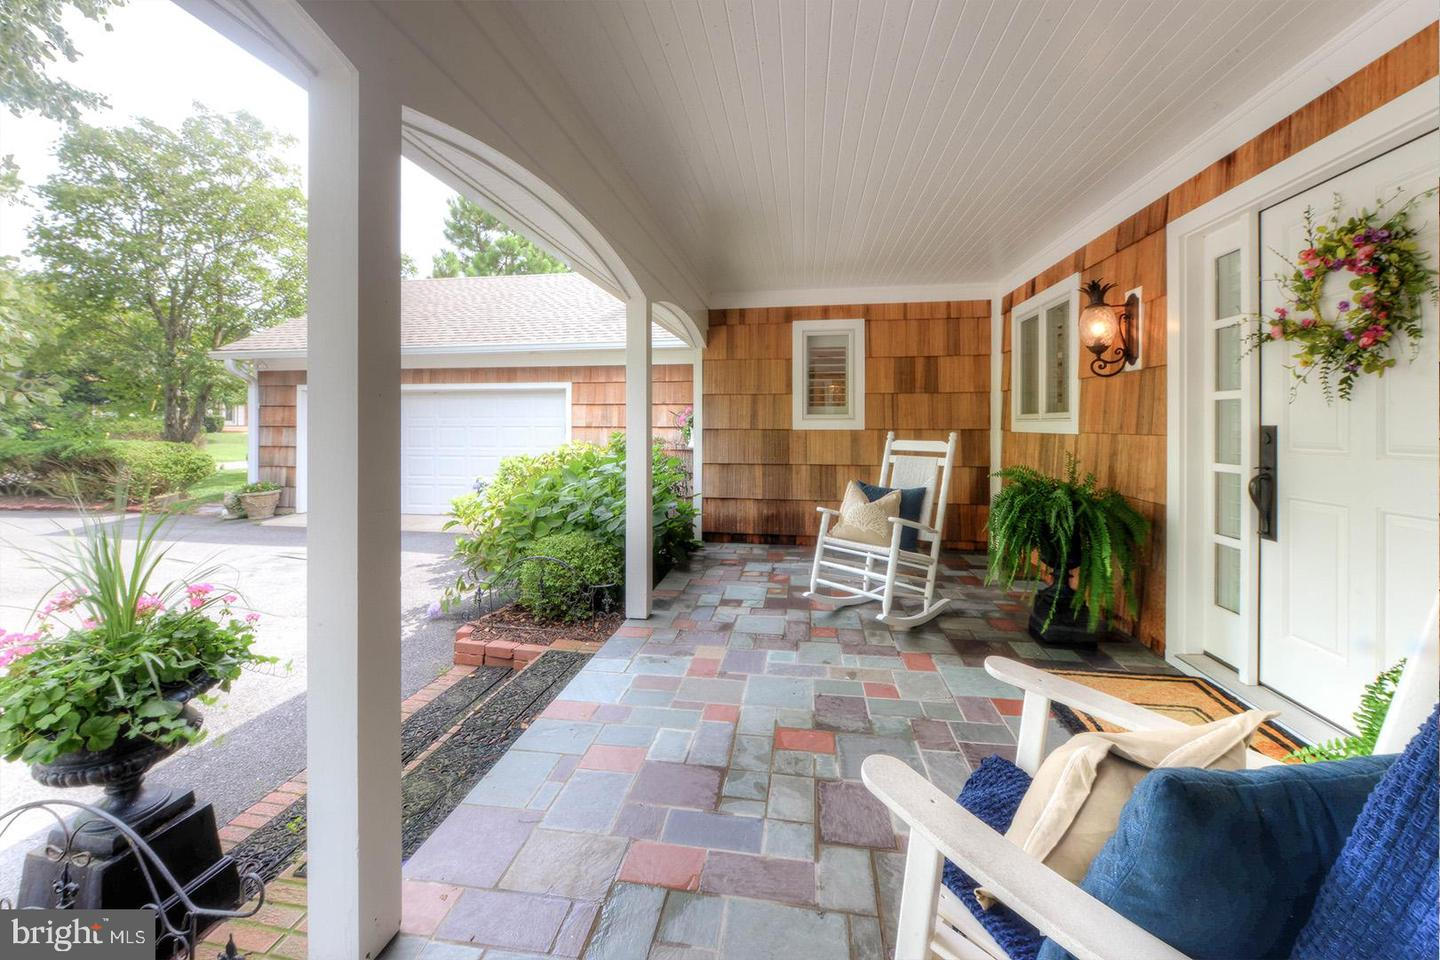 DESU146280-301986128200-2019-10-25-13-18-16 316 Salisbury St | Rehoboth Beach, DE Real Estate For Sale | MLS# Desu146280  - Rehoboth Beach Real Estate - Bryce Lingo and Shaun Tull REALTORS, Rehoboth Beach, Delaware